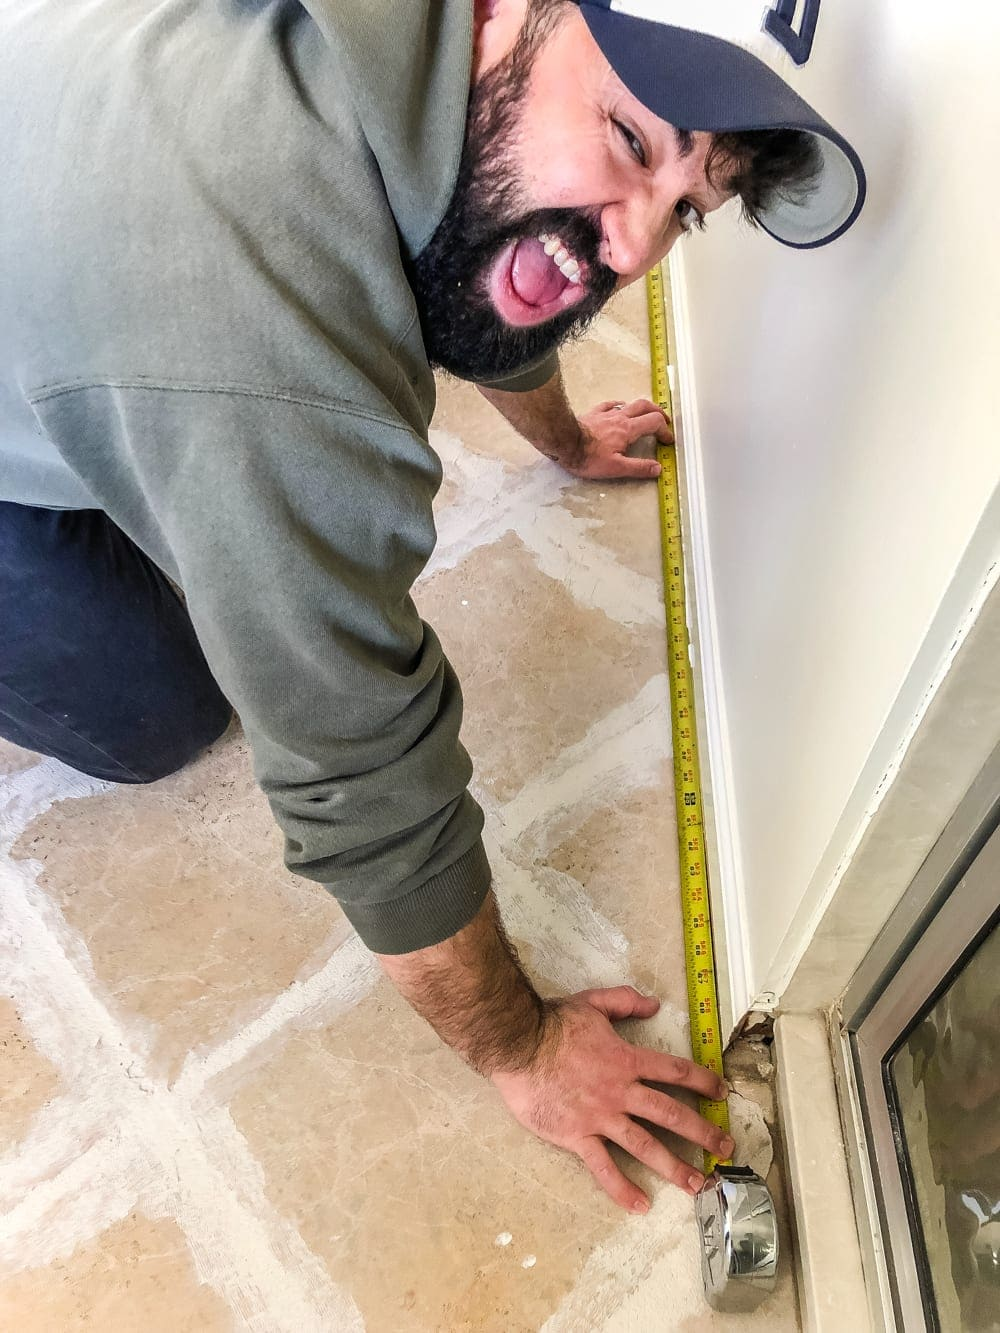 How to install sheet vinyl flooring over old tile | measure... a LOT!